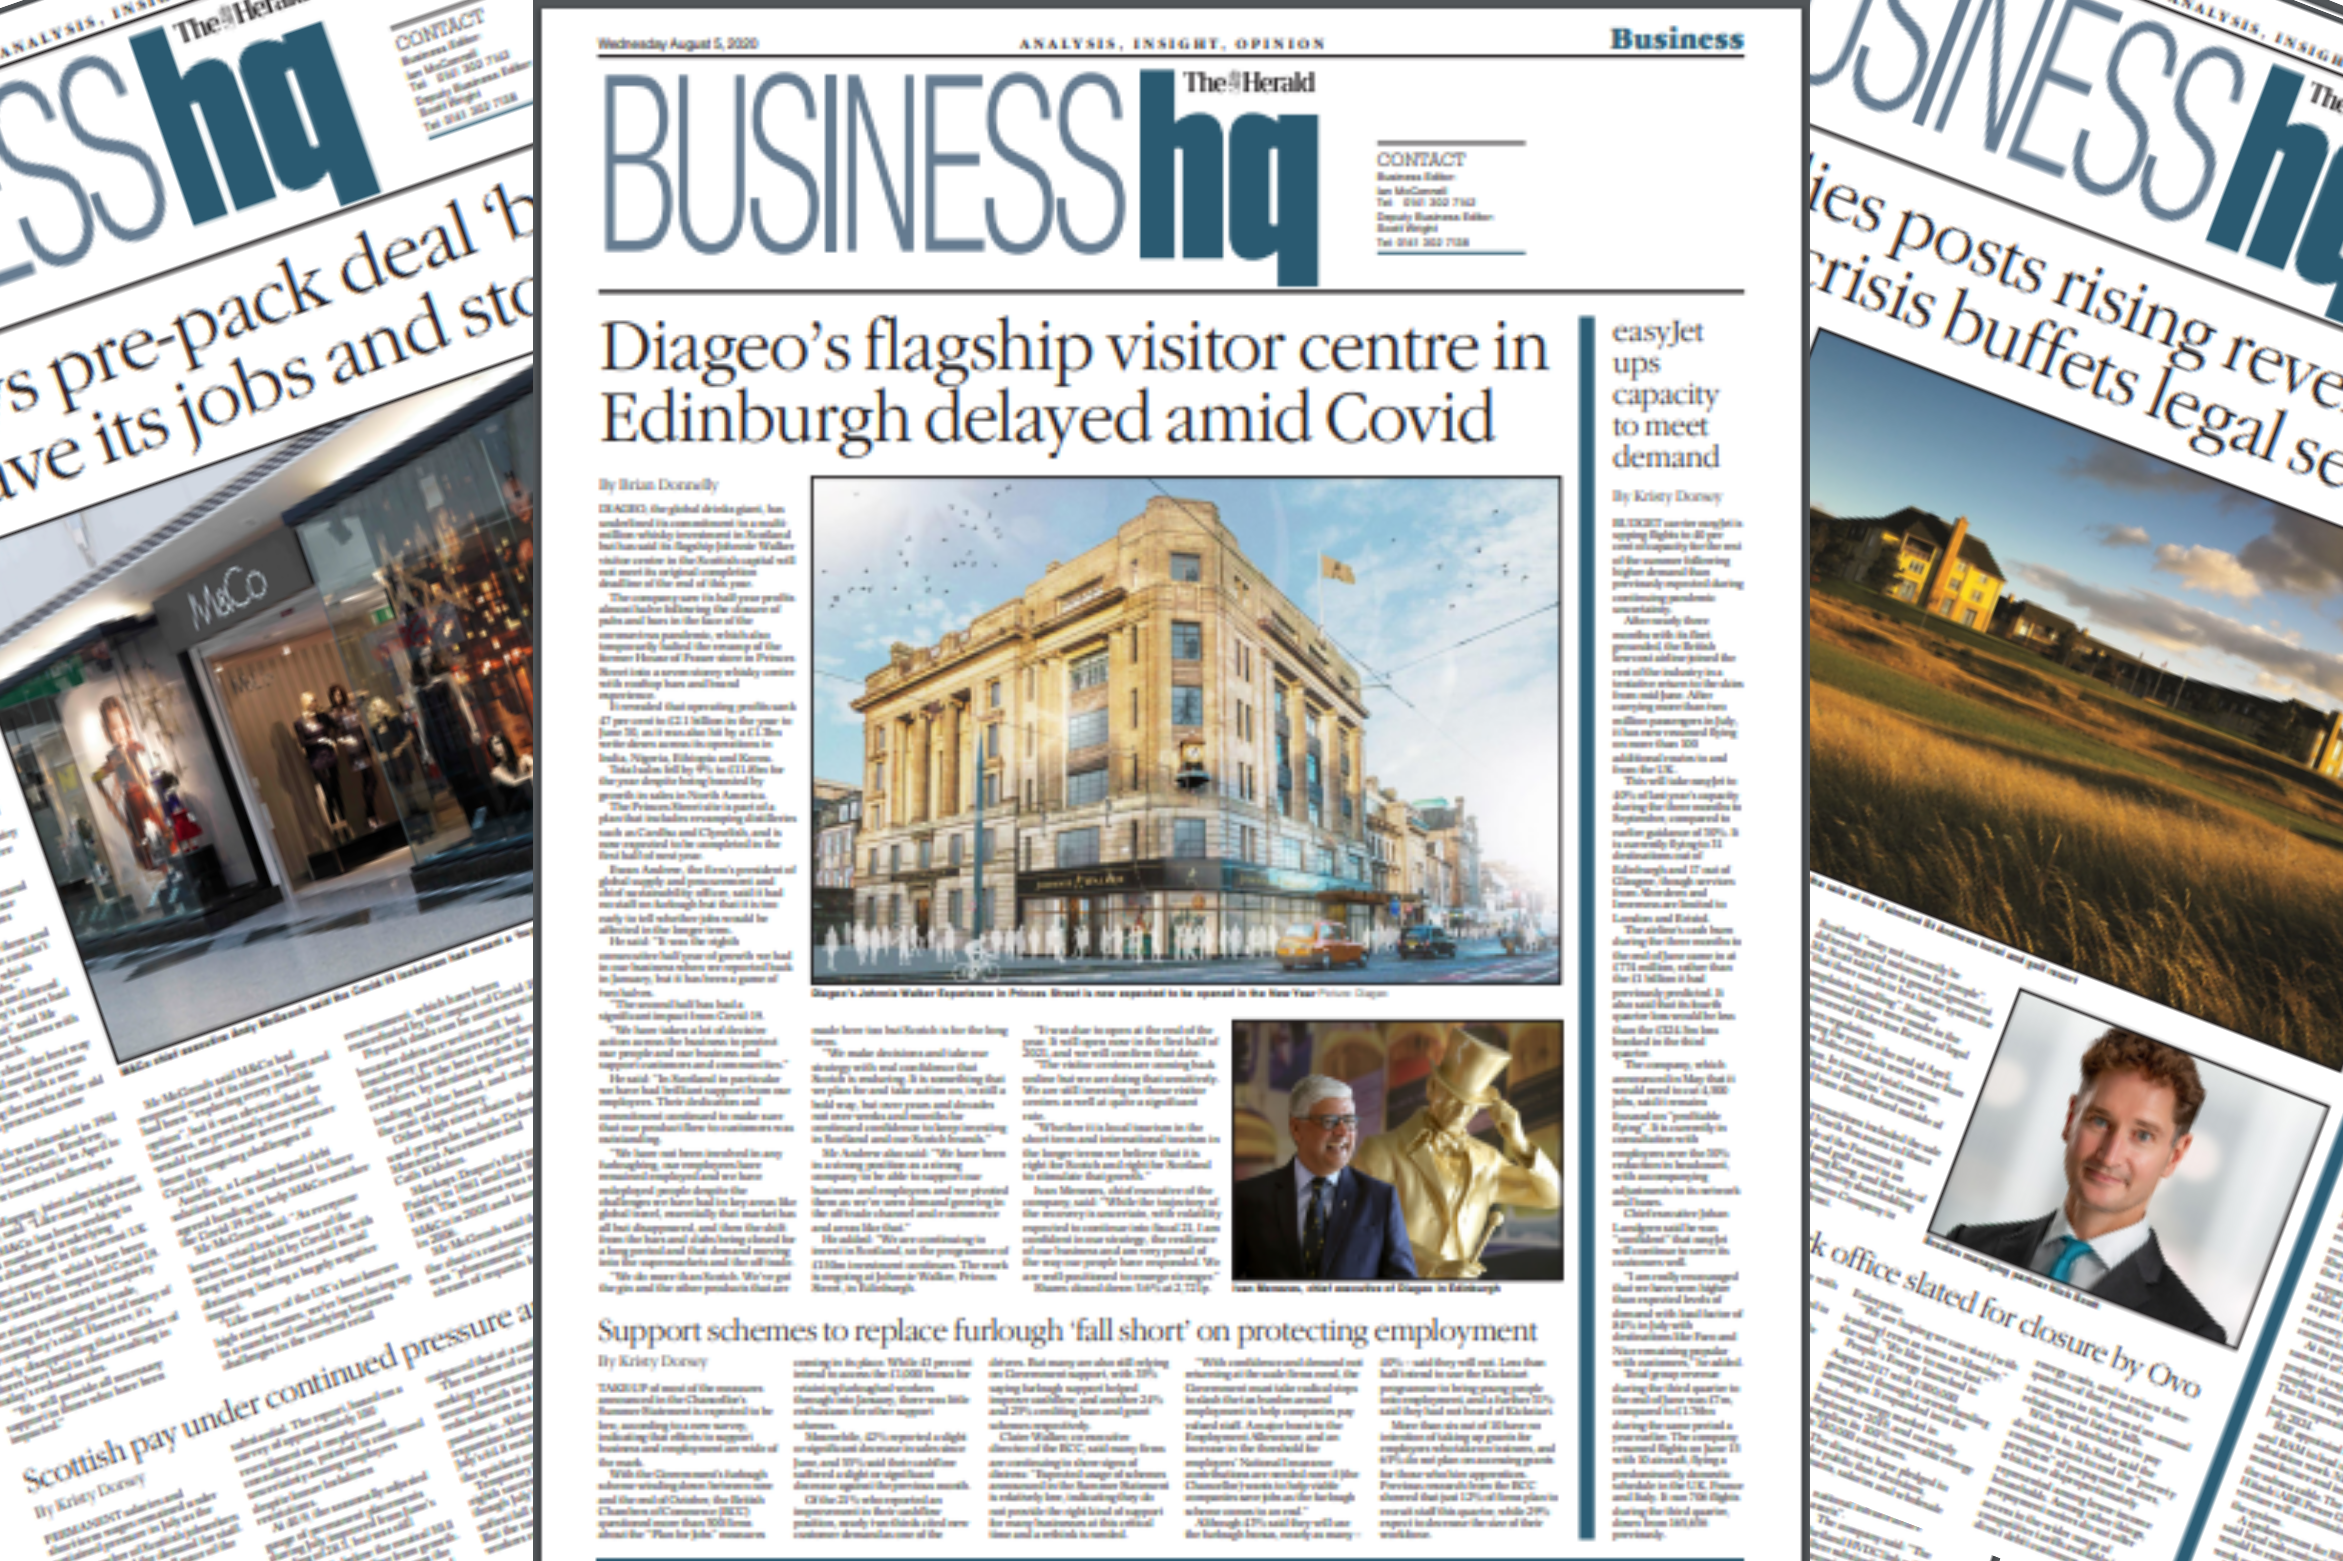 Jobs lost as Glasgow 'institution' stays closed | Rangers FC sells 30,000 tops in 48 hours | Diageo's Johnnie Walker whisky centre delayed